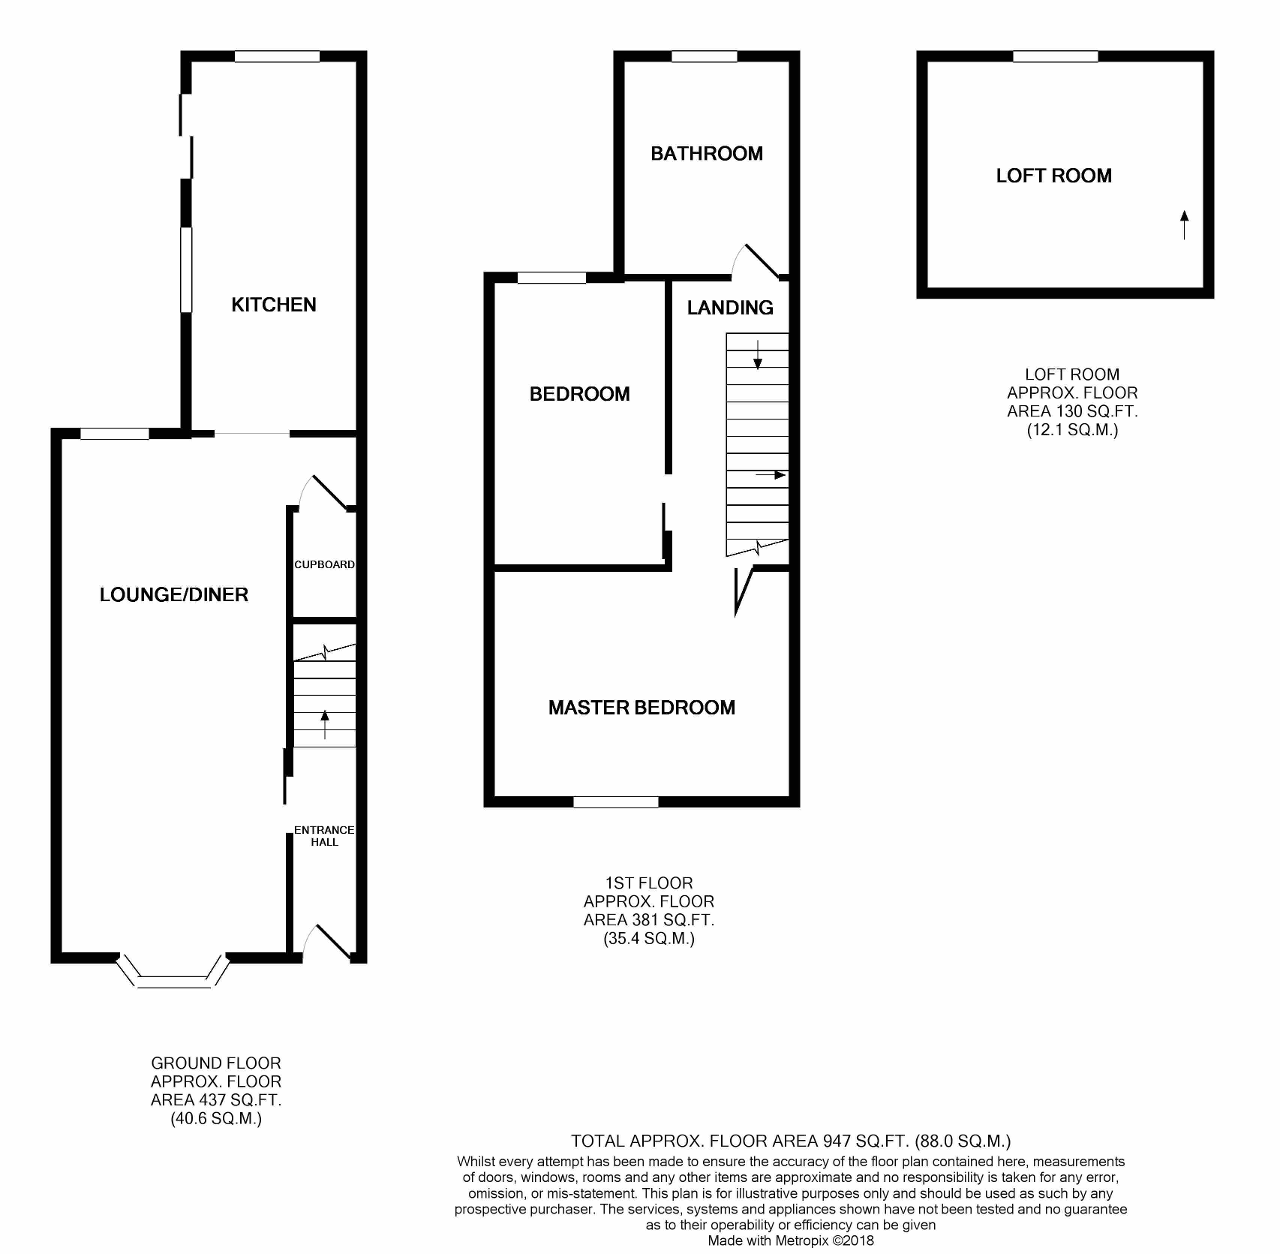 Floorplan of Newbridge Road, Hull, HU9 2NU